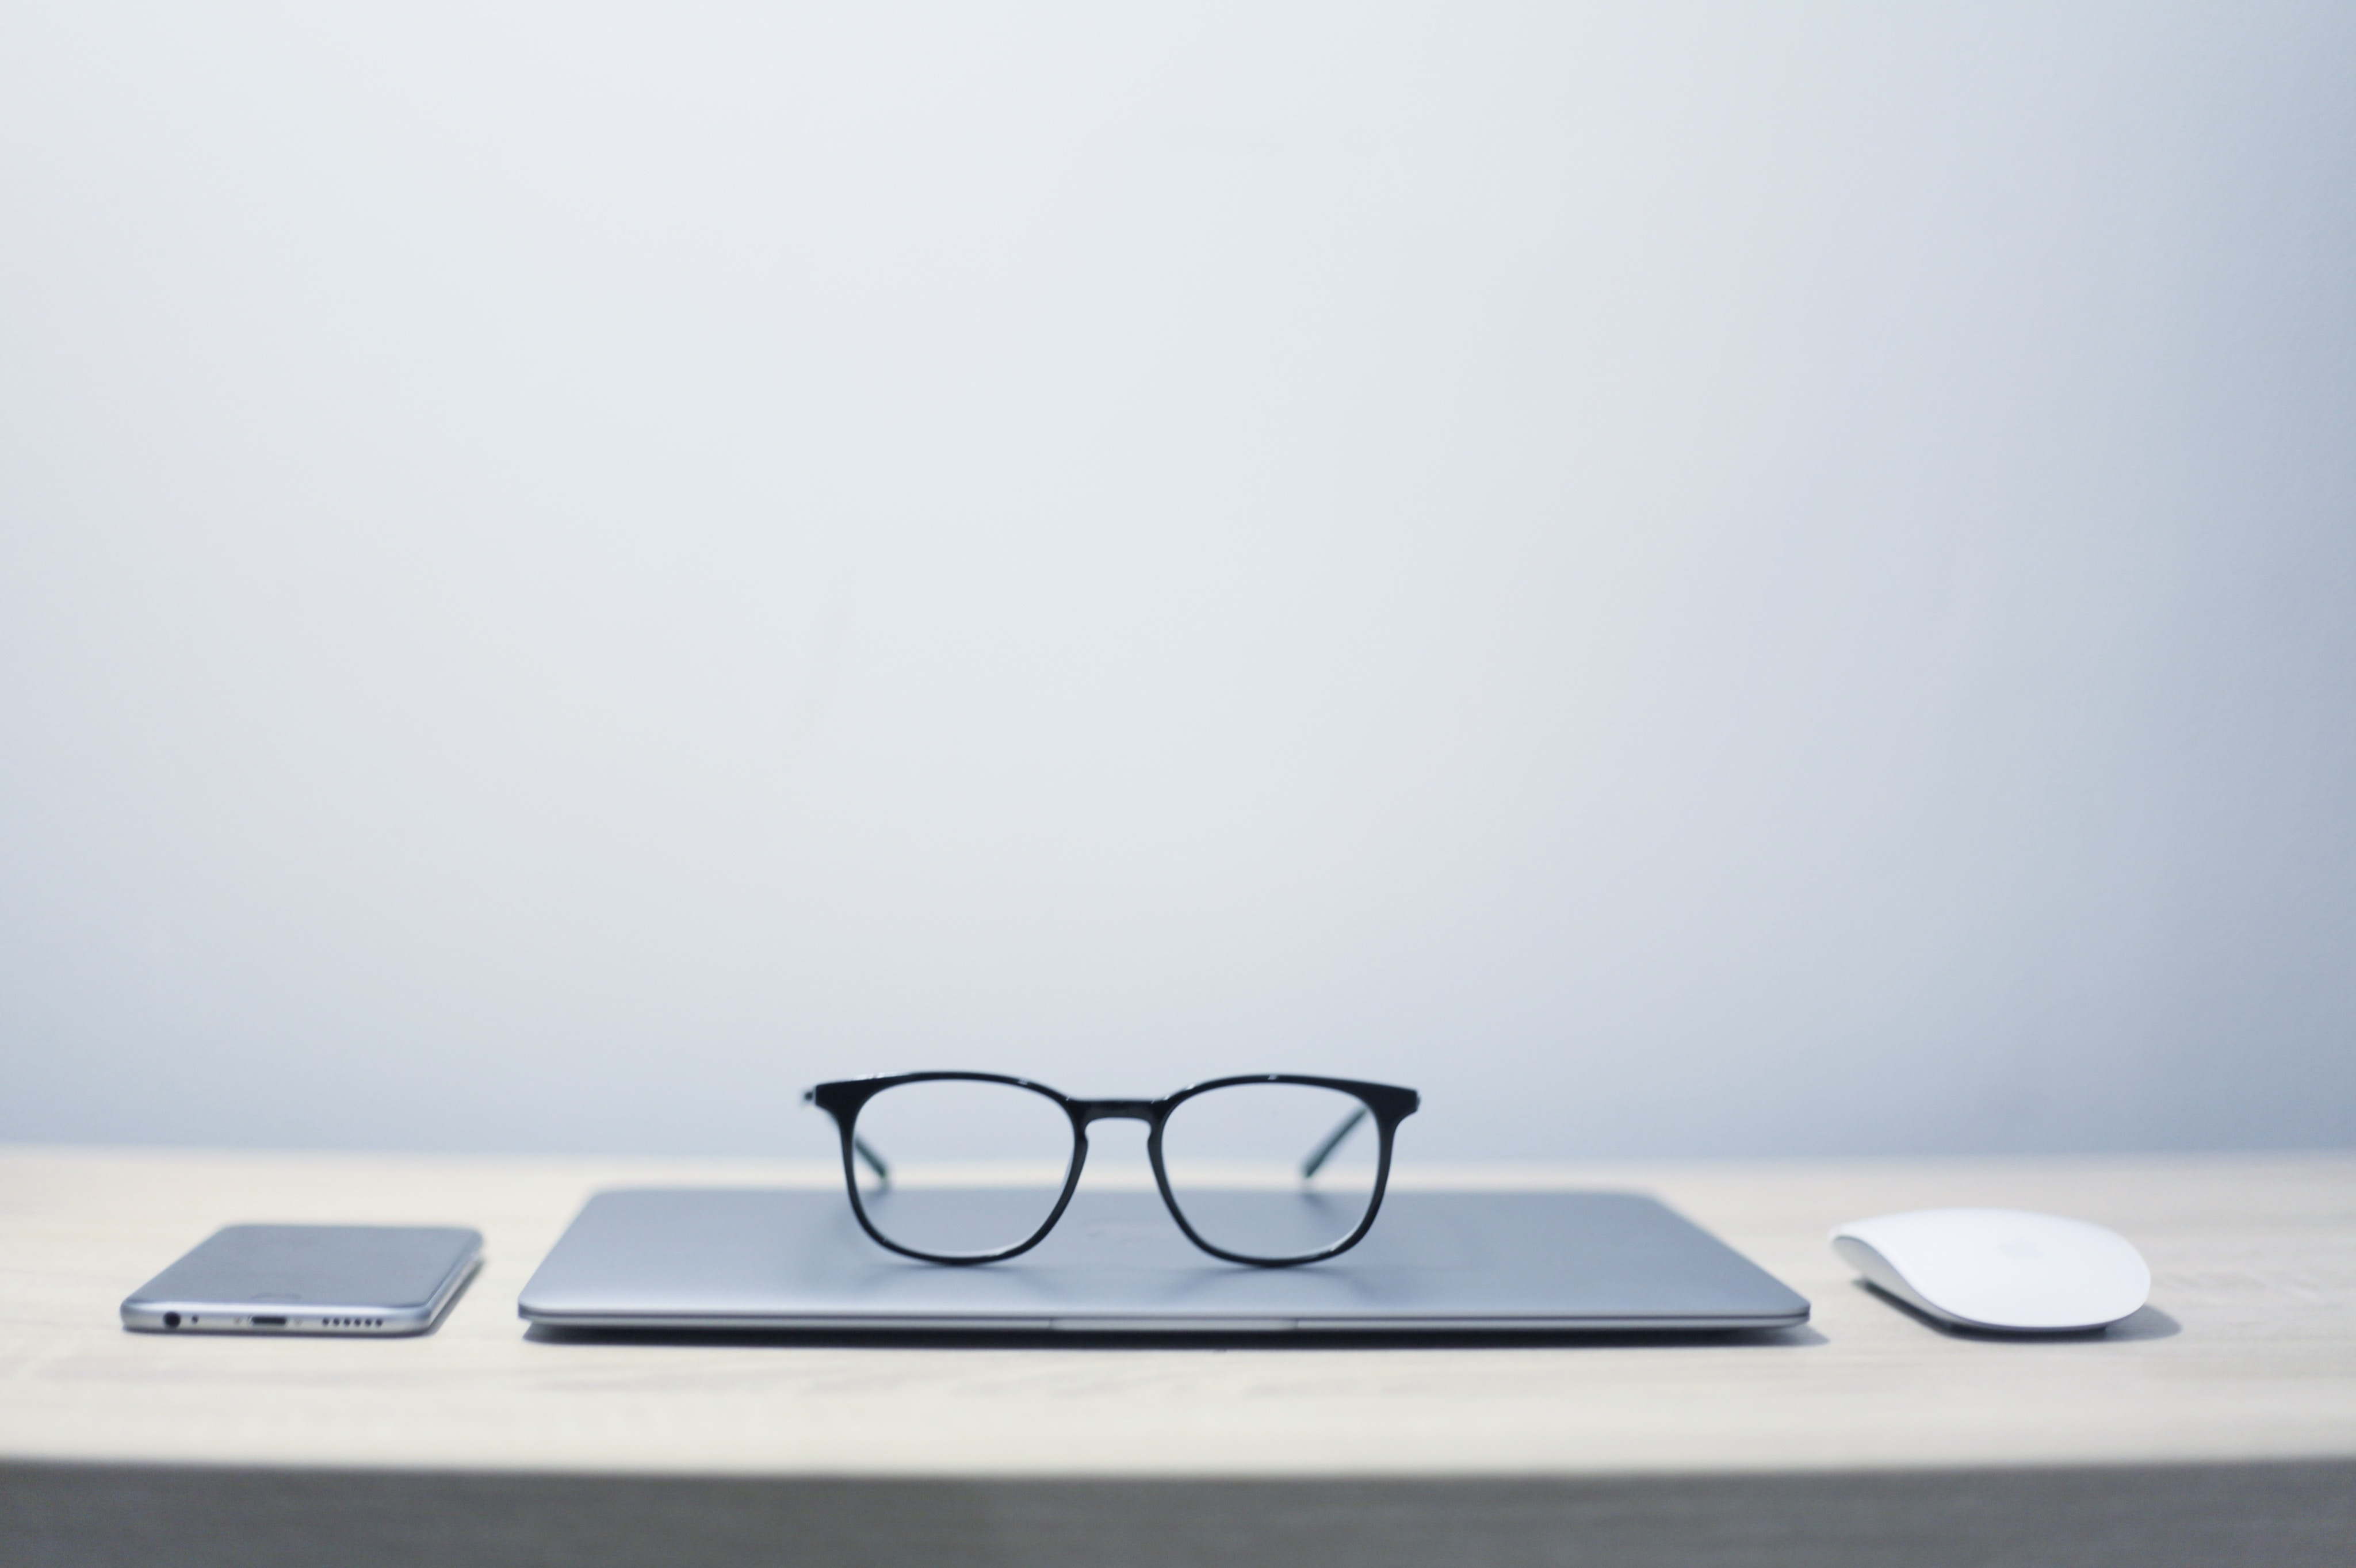 closed laptop on a desk with glasses